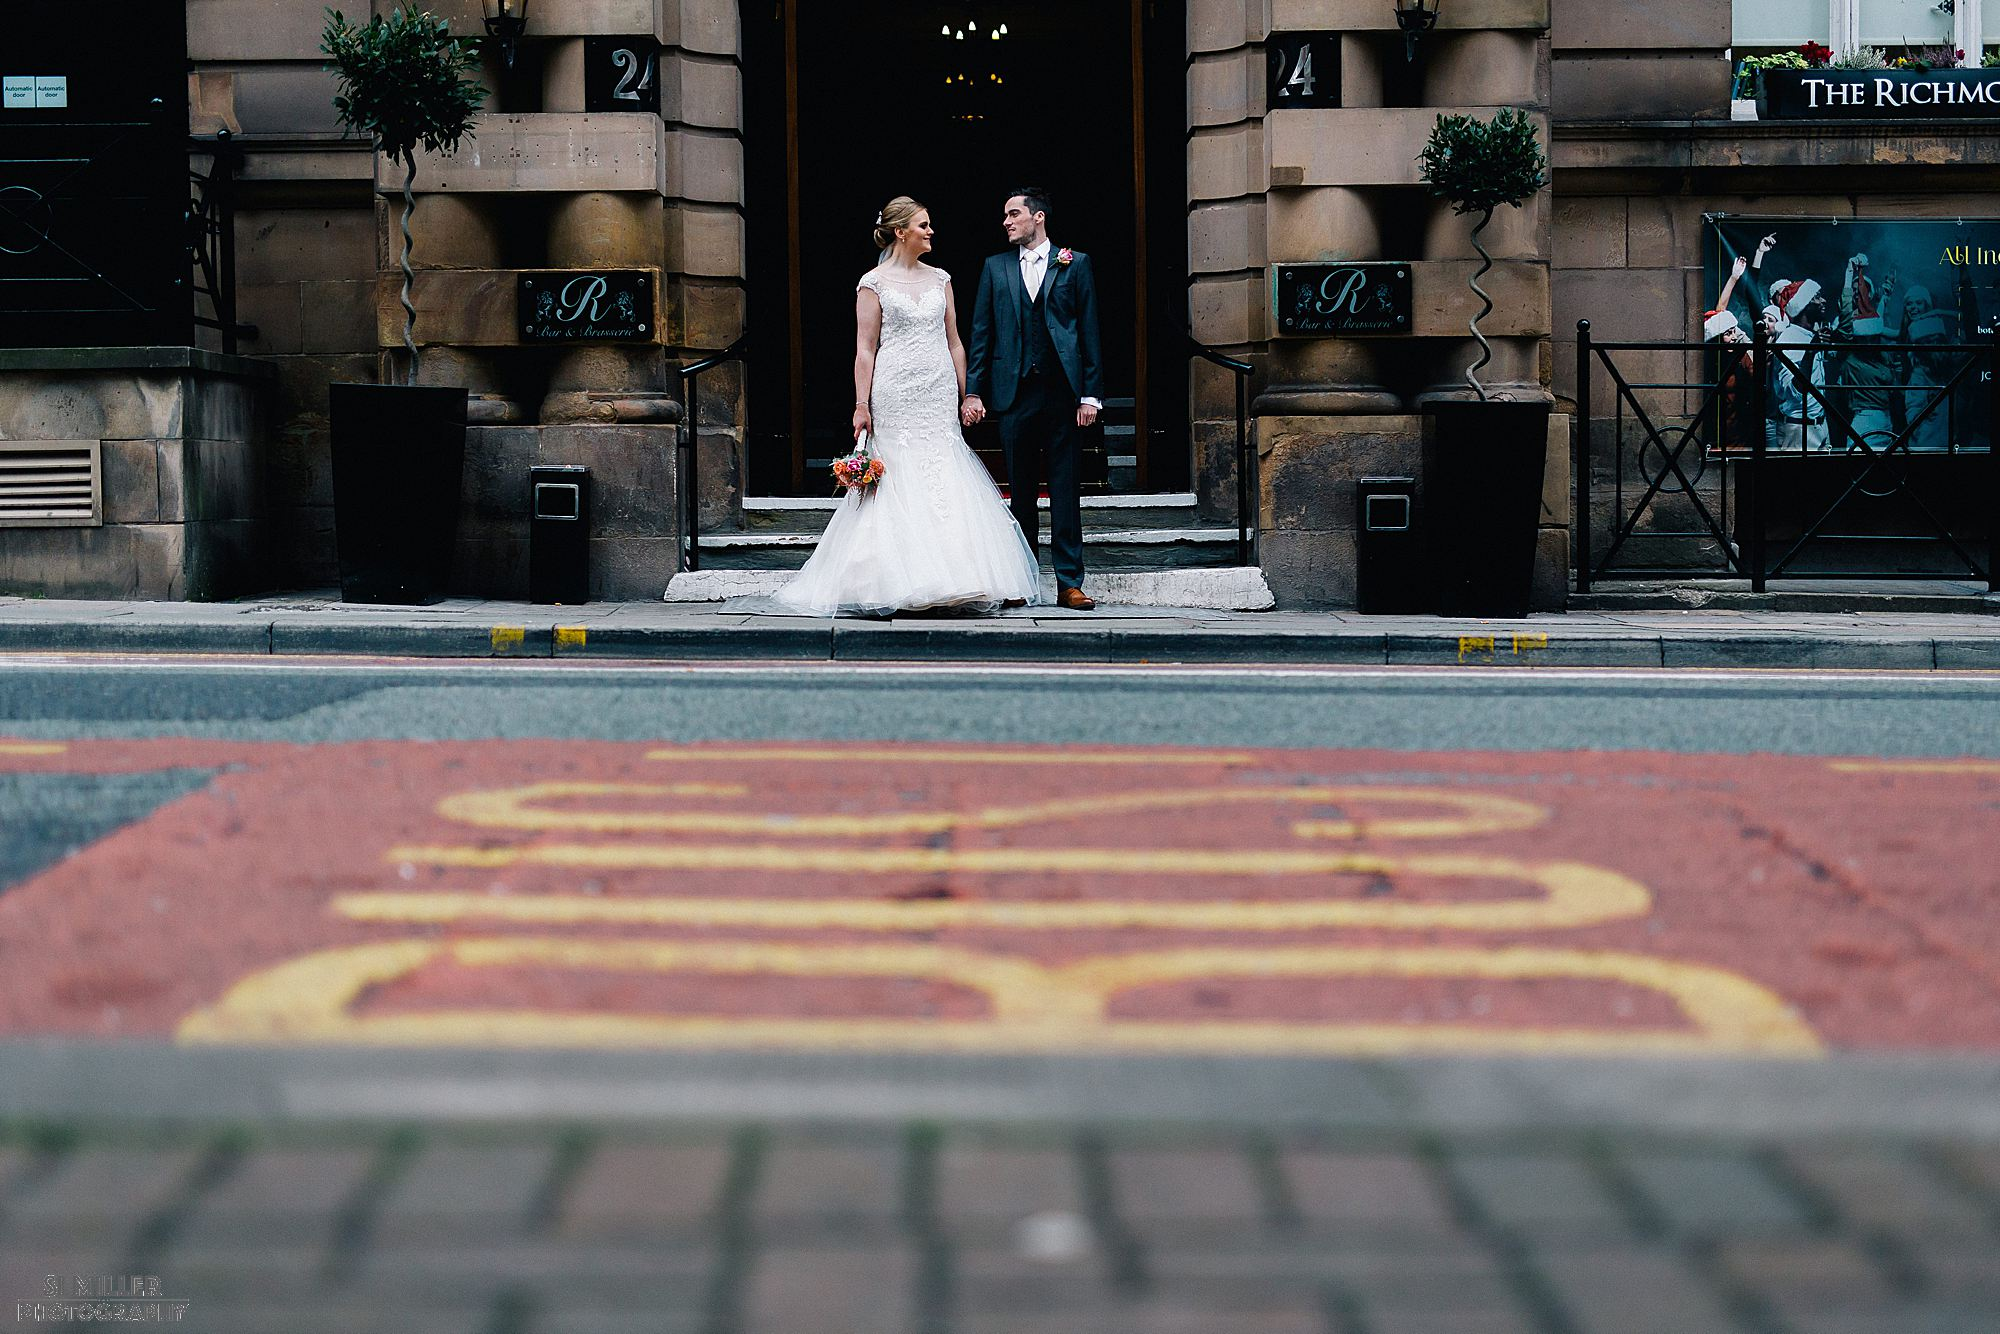 Bride and groom outside the Richmond Liverpool couple portrait